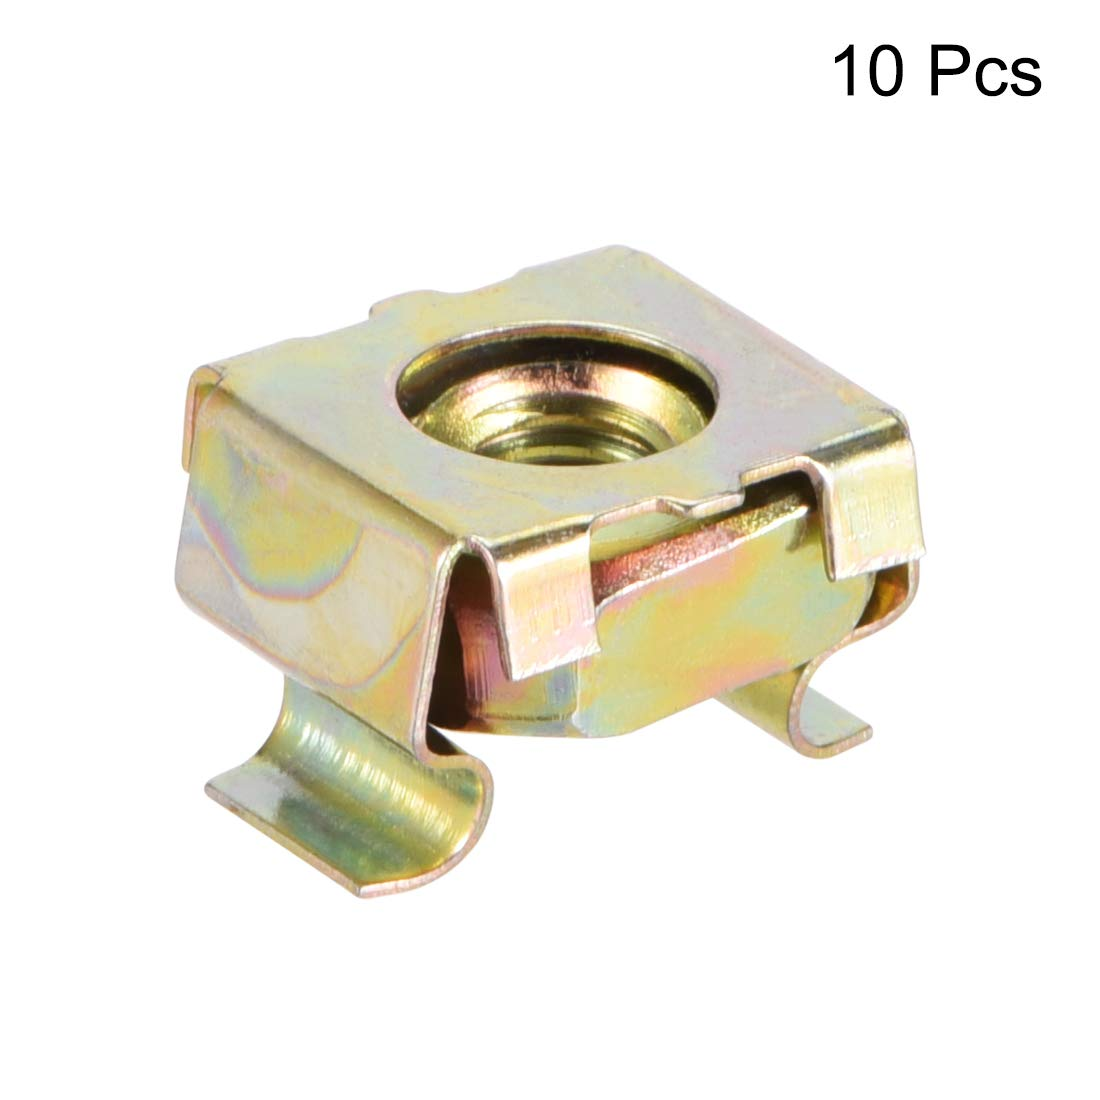 Carbon Steel Yellow Zinc Plated Pack of 10 uxcell M4 Cage Nuts for Server Rack Cabinet